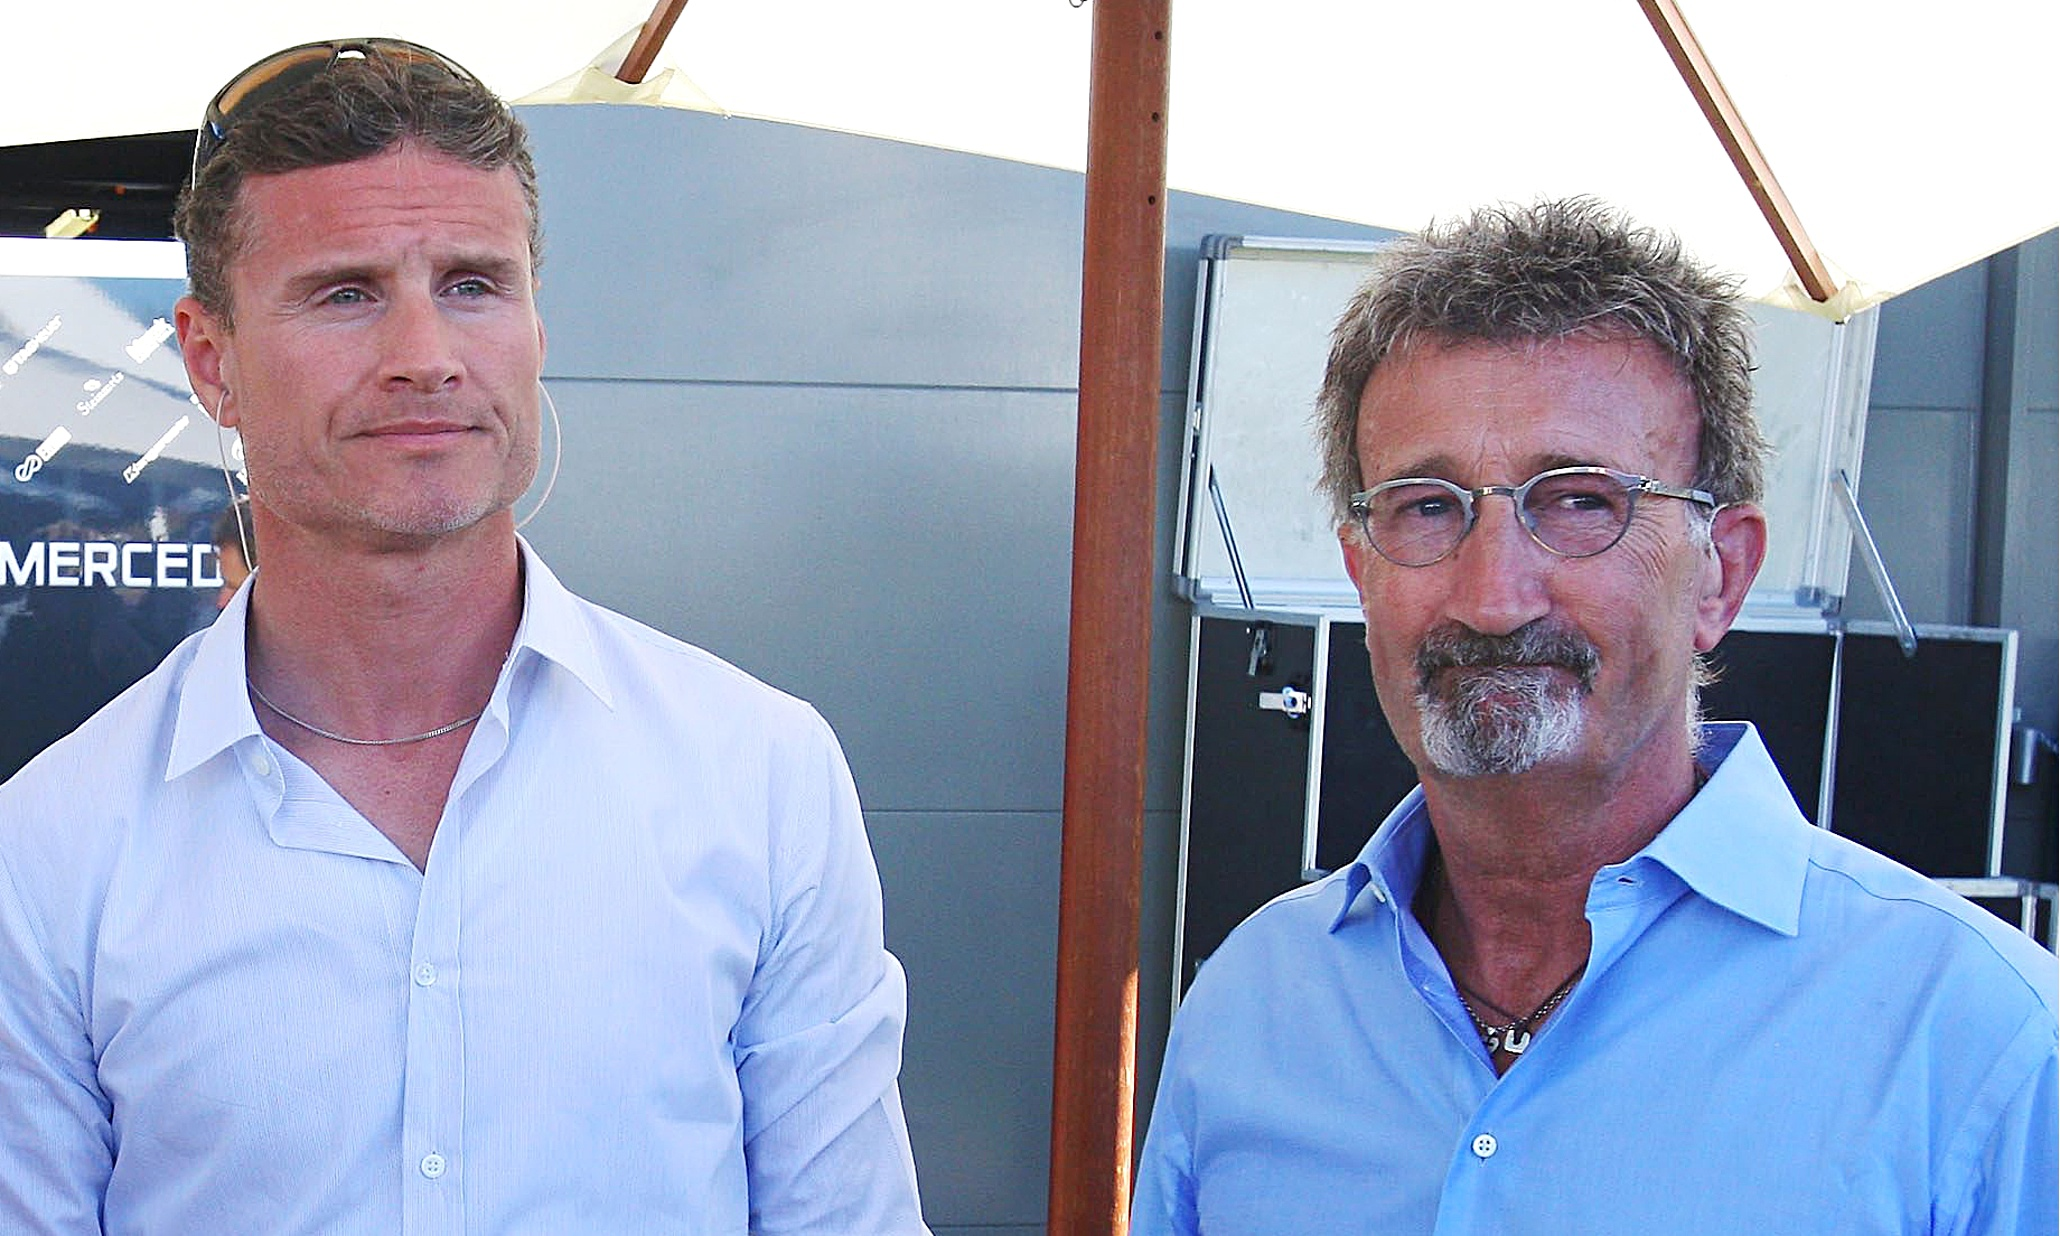 McLaren's F1 struggles caused by distractions, says David Coulthard